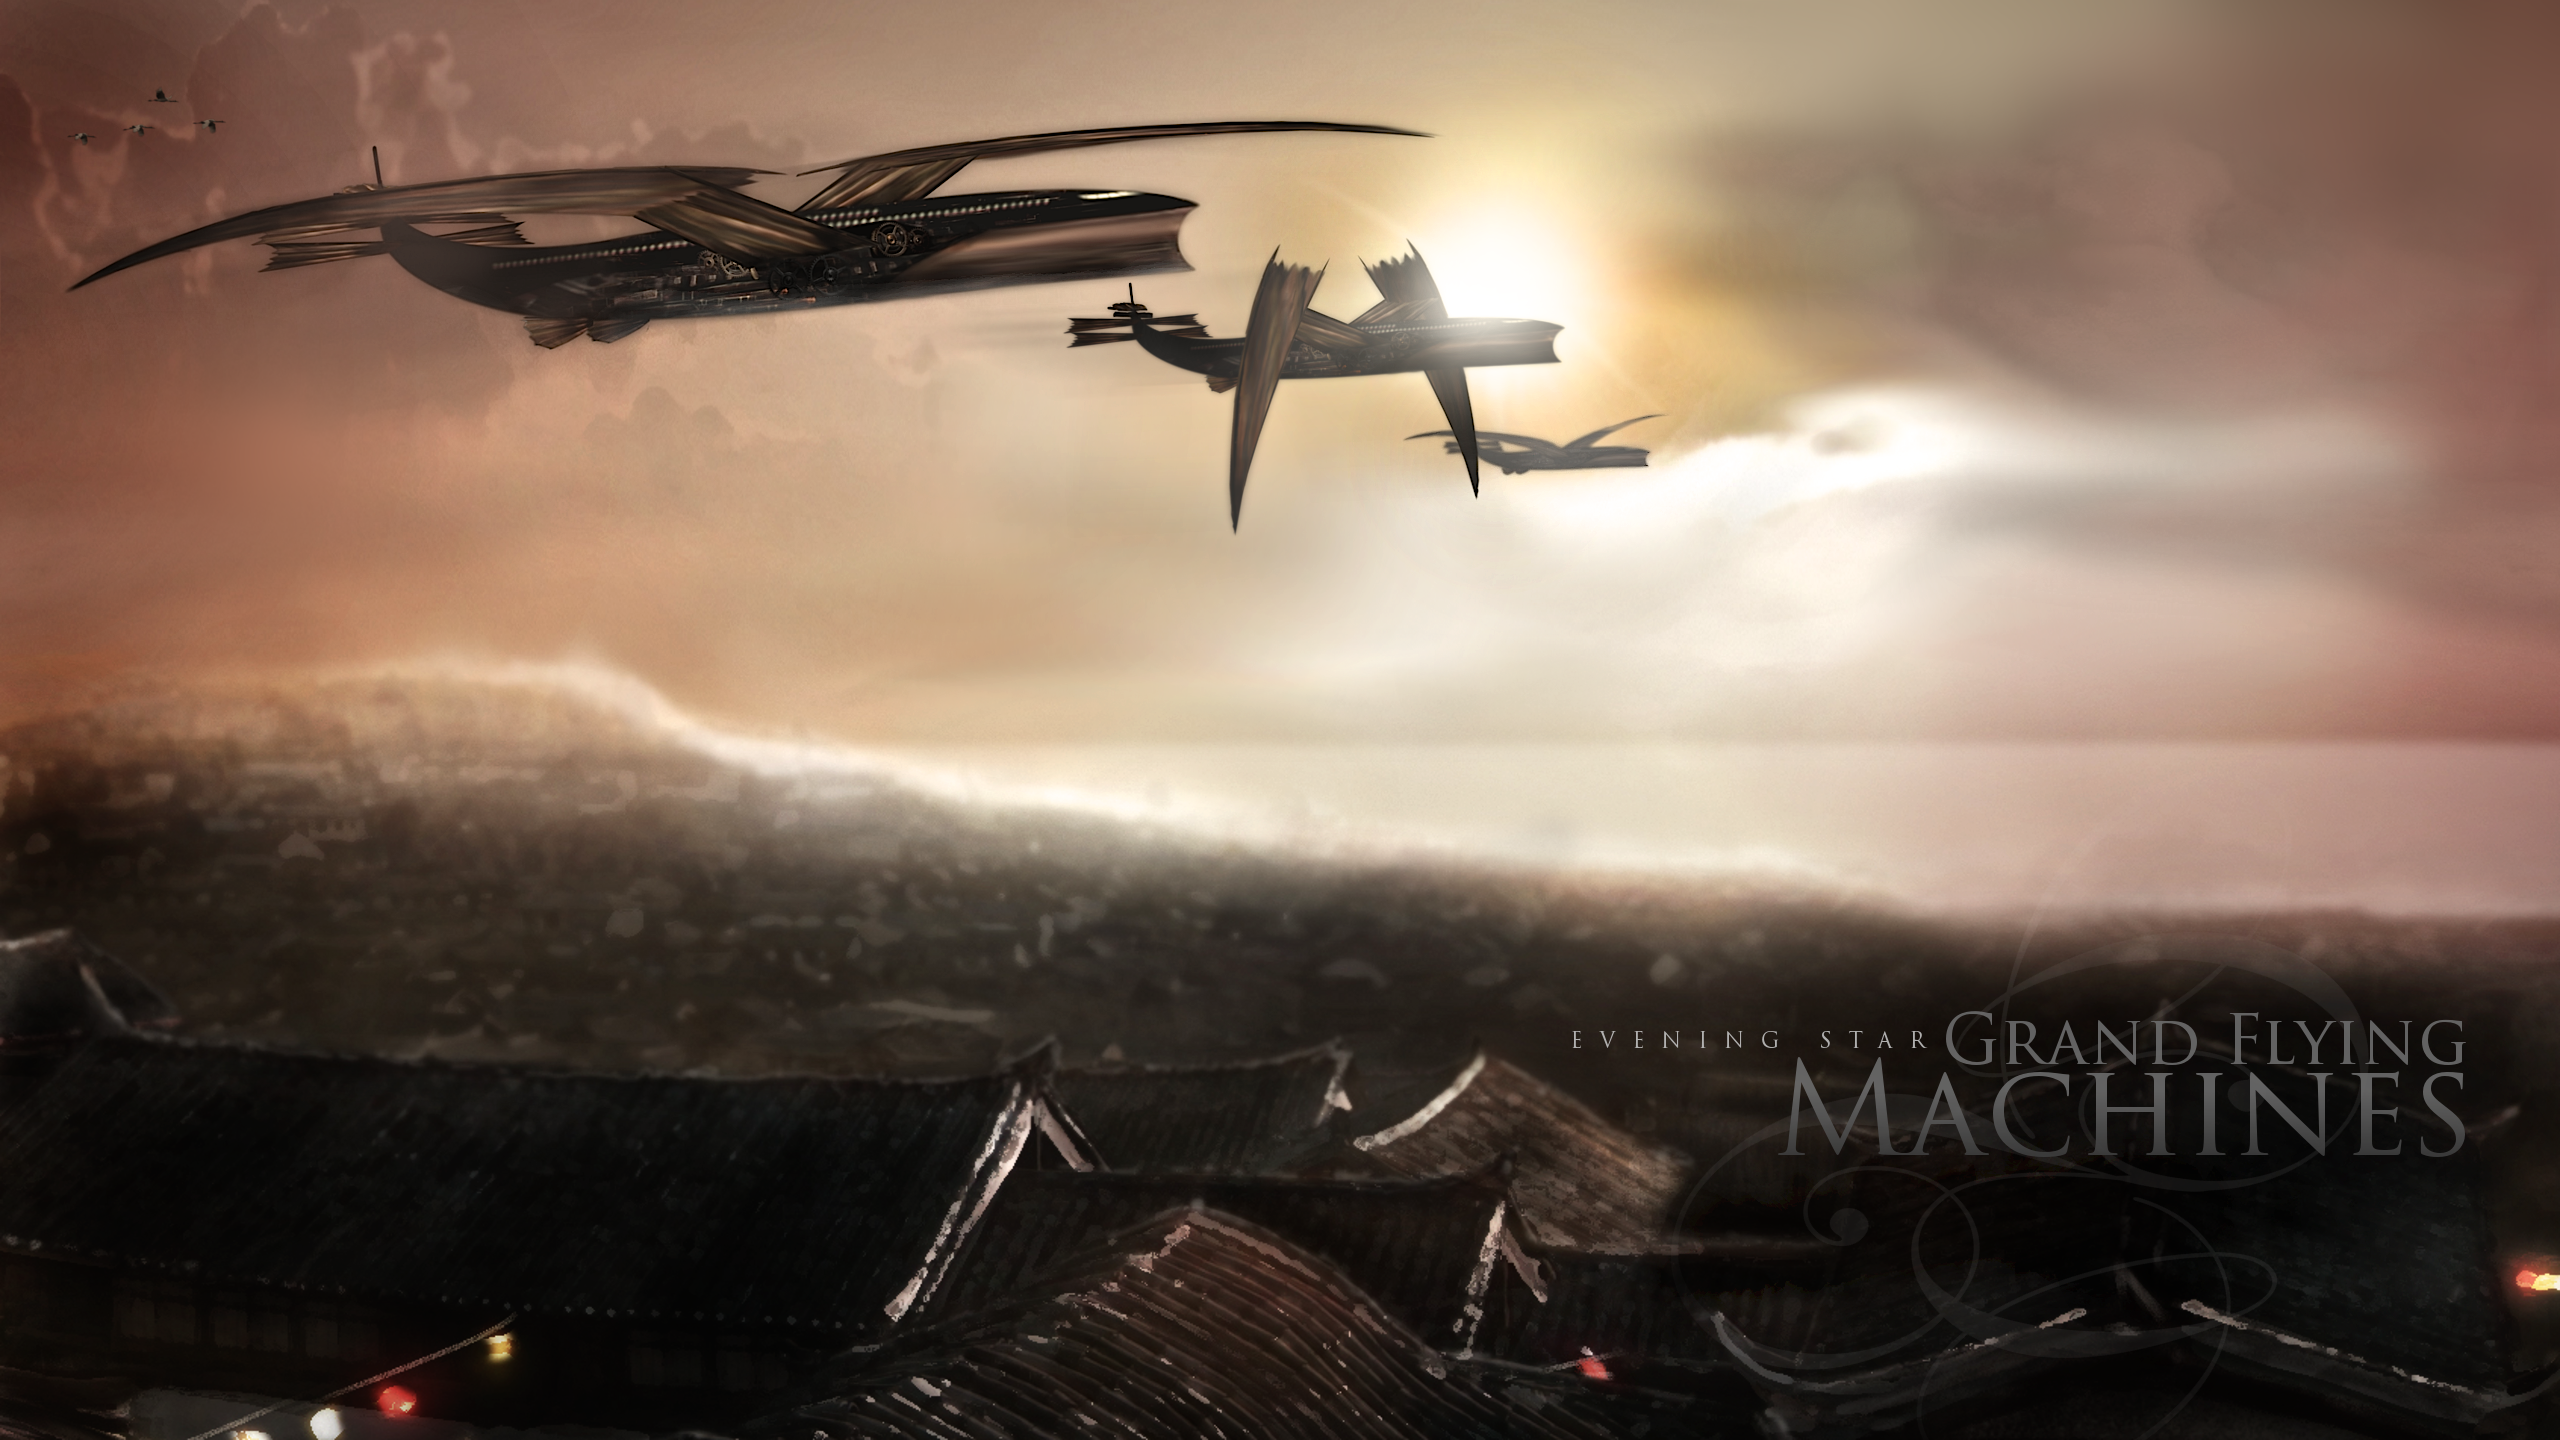 Grand Flying Machines by